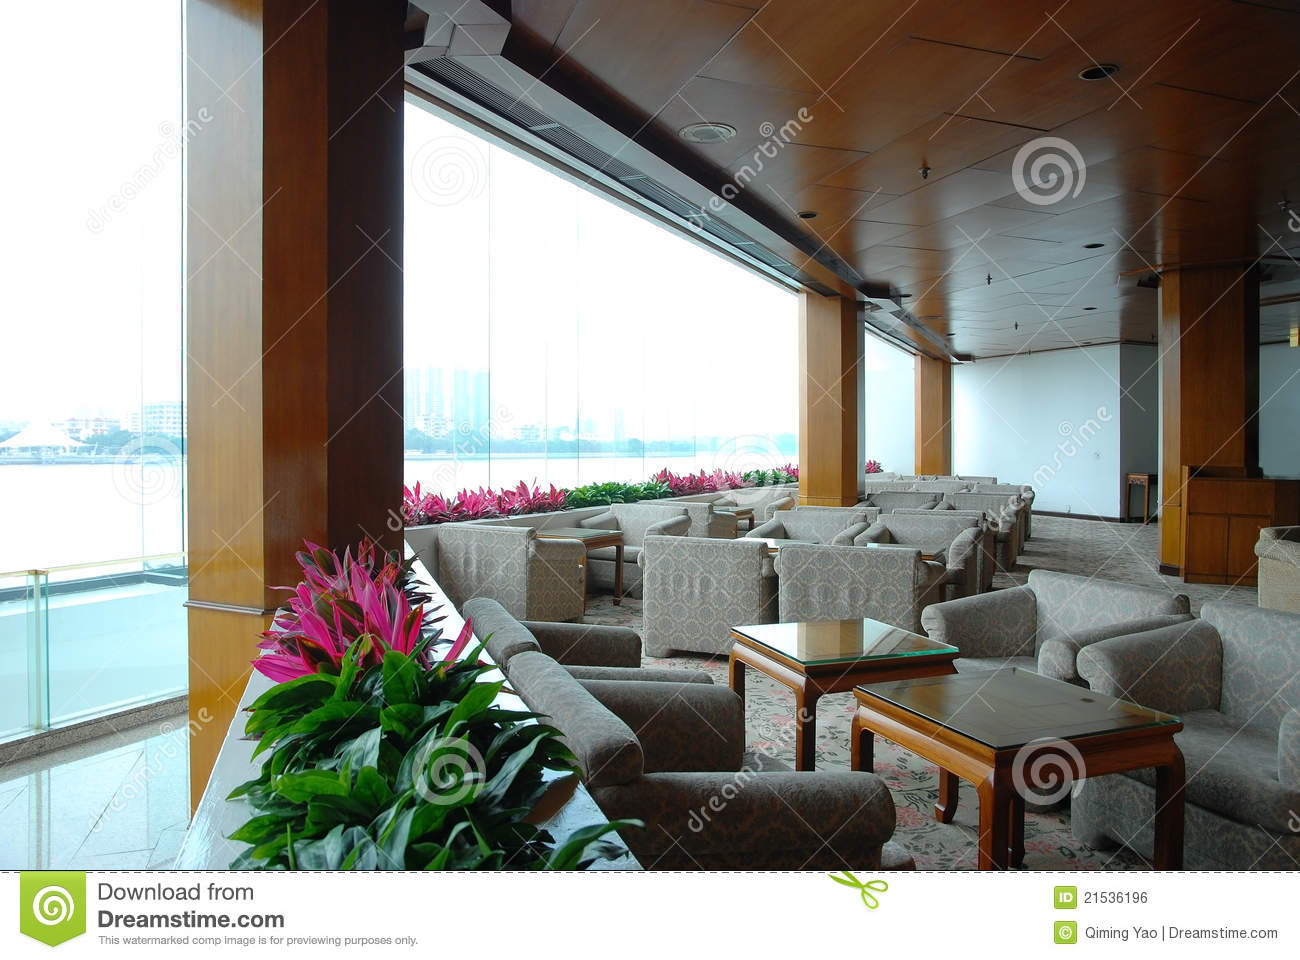 Restaurant Interior Window : Interior of the restaurant royalty free stock image